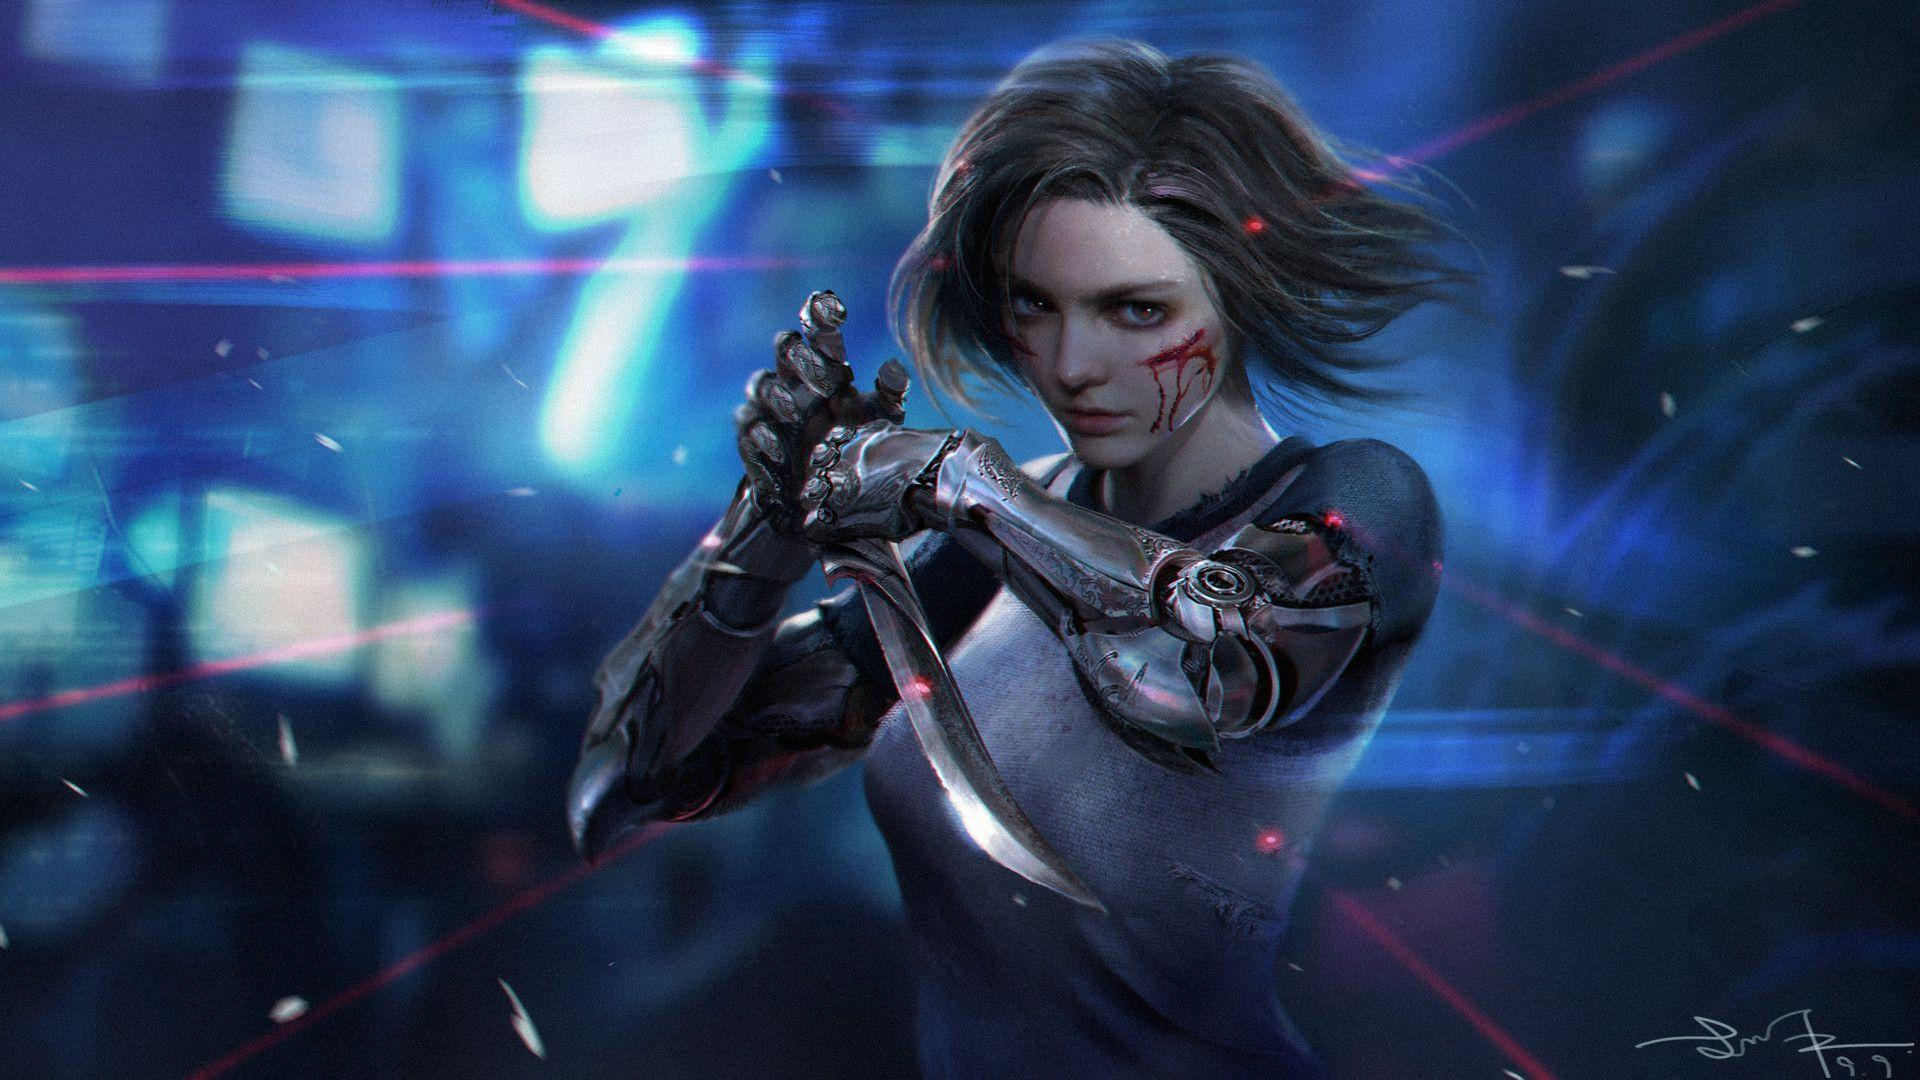 Alita Battle Angel Wallpaper. alita battle angel releases three new